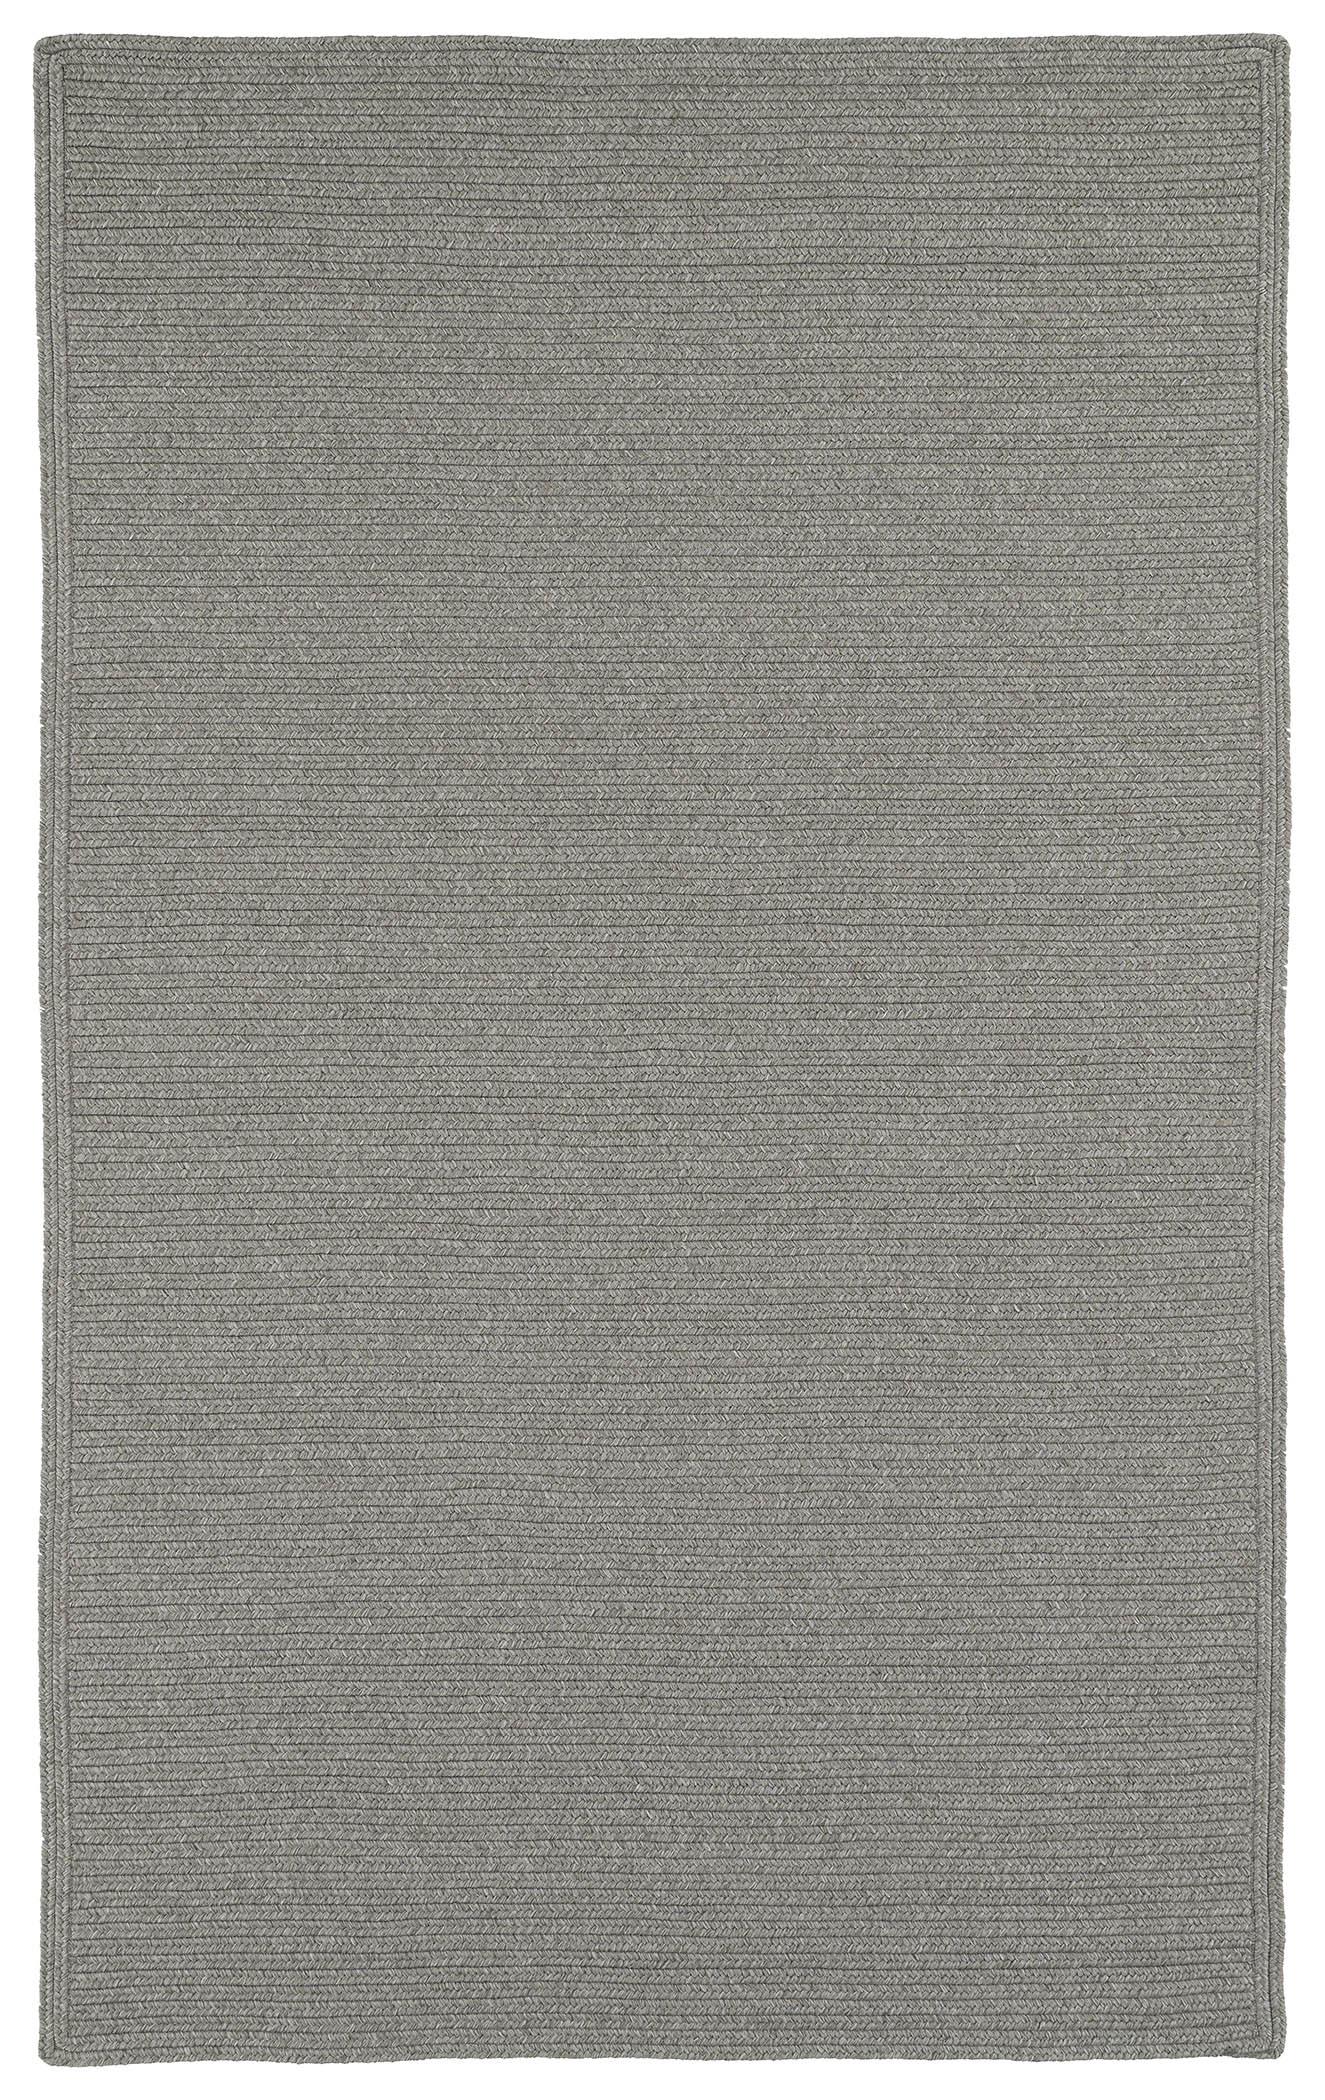 Bikini 3020 Pewter 73 Outdoor Rug by Kaleen